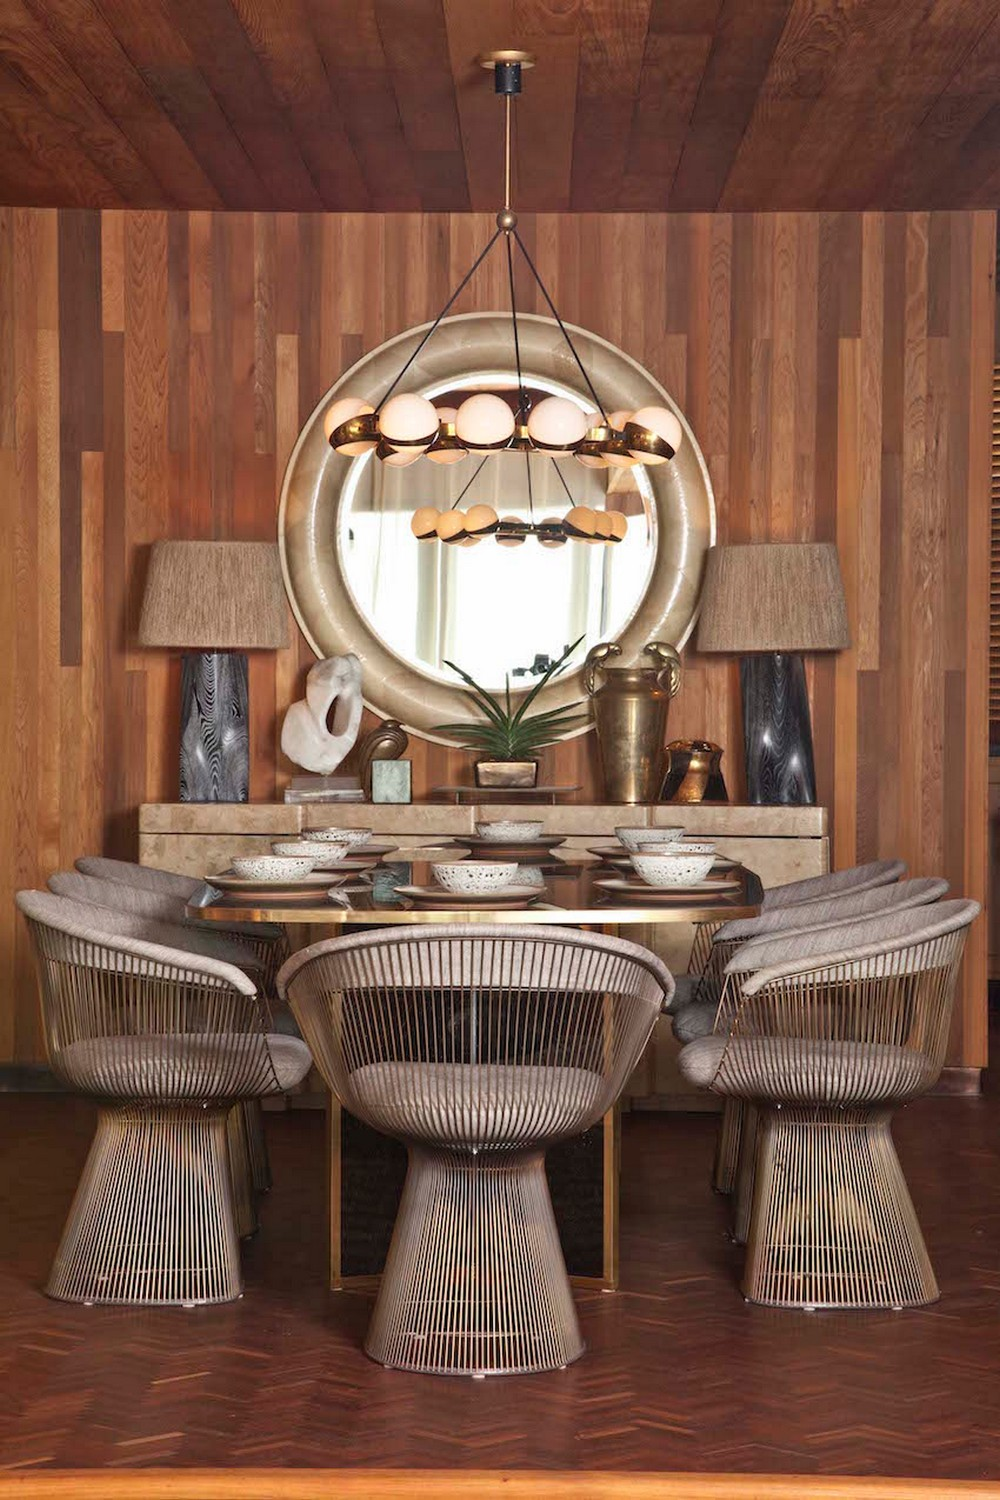 Kelly Wearstler's Most Ambitious Dining Room Projects kelly wearstler Kelly Wearstler's Most Ambitious Dining Room Projects 10 Amazing Dining Room Ideas to Inspire You Today 10